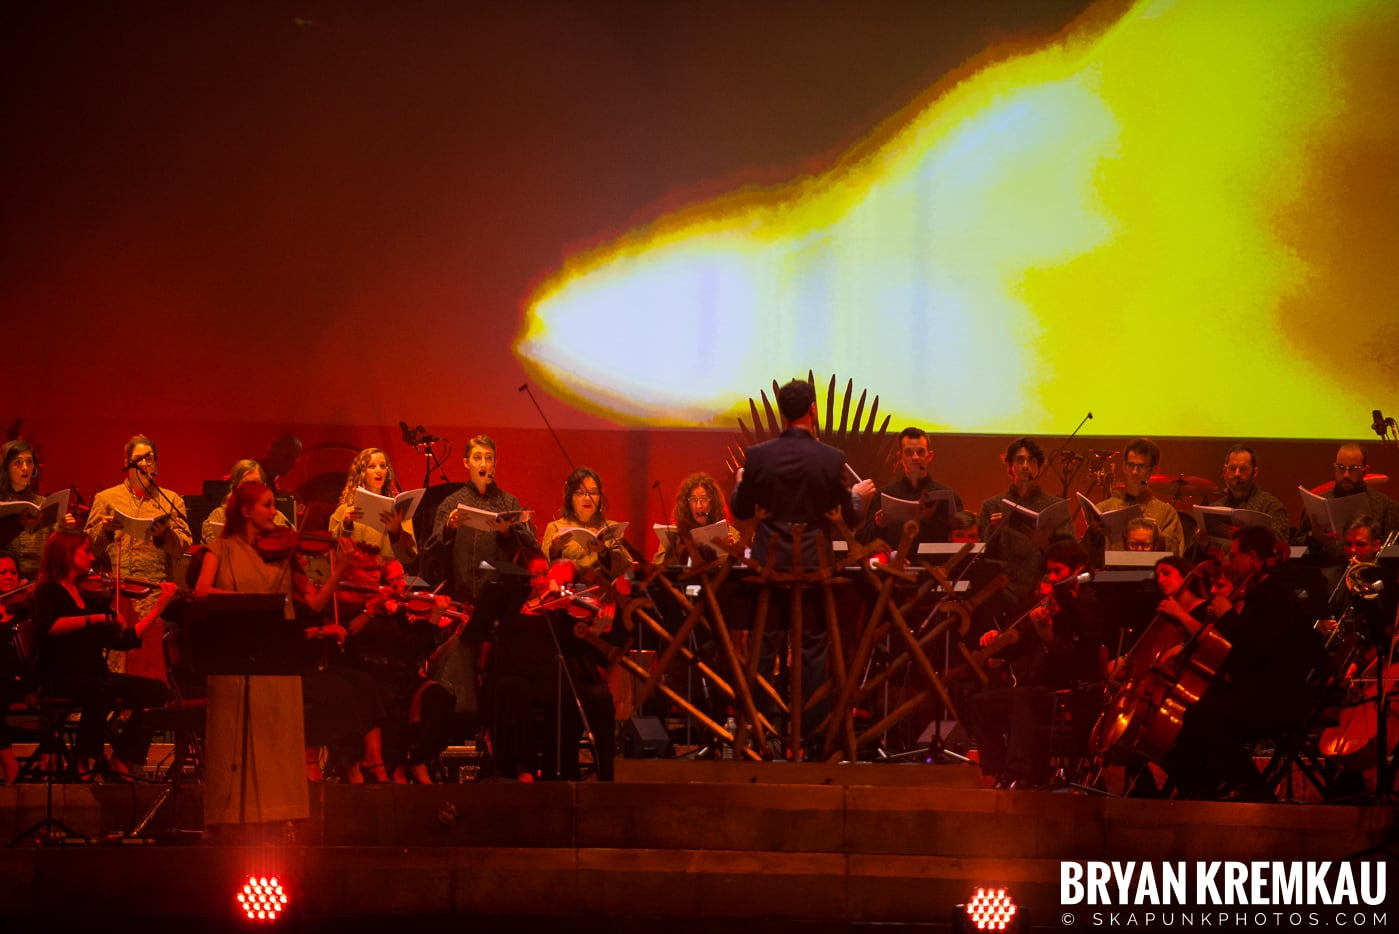 Game of Thrones Live Experience @ Prudential Center, Newark, NJ - 9.26.18 (34)